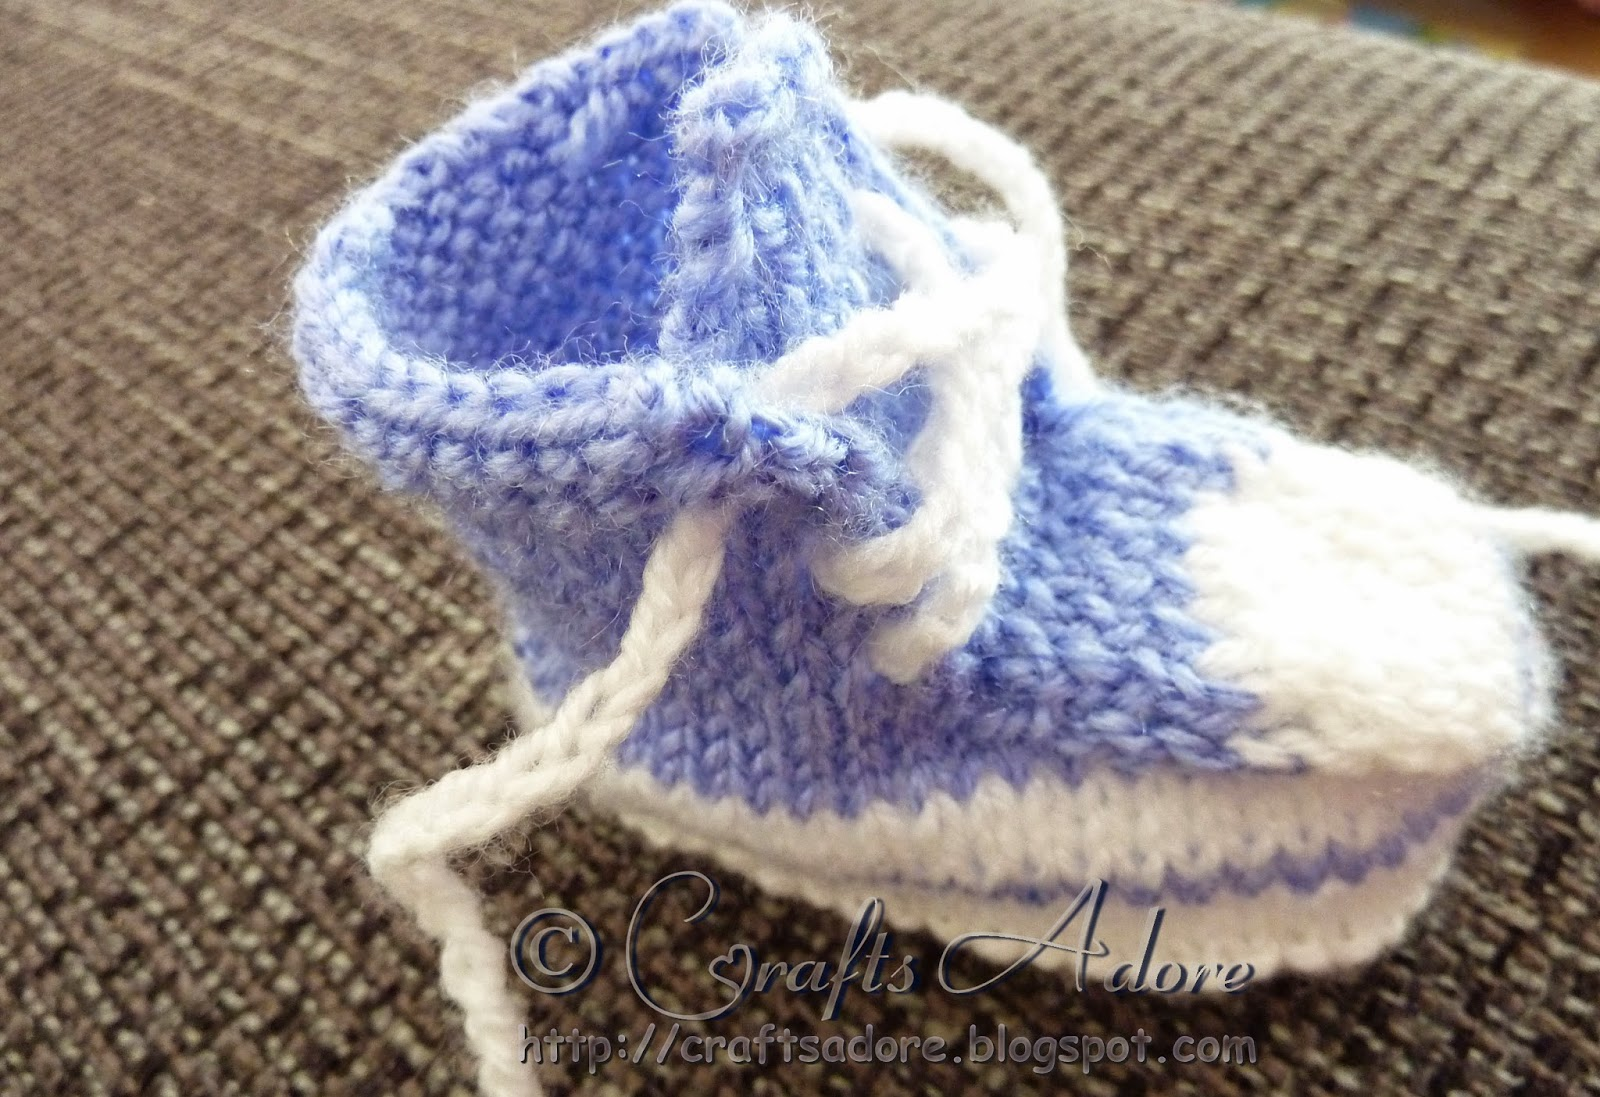 CraftsAdore: Knitted Baby Boy Converse Booties